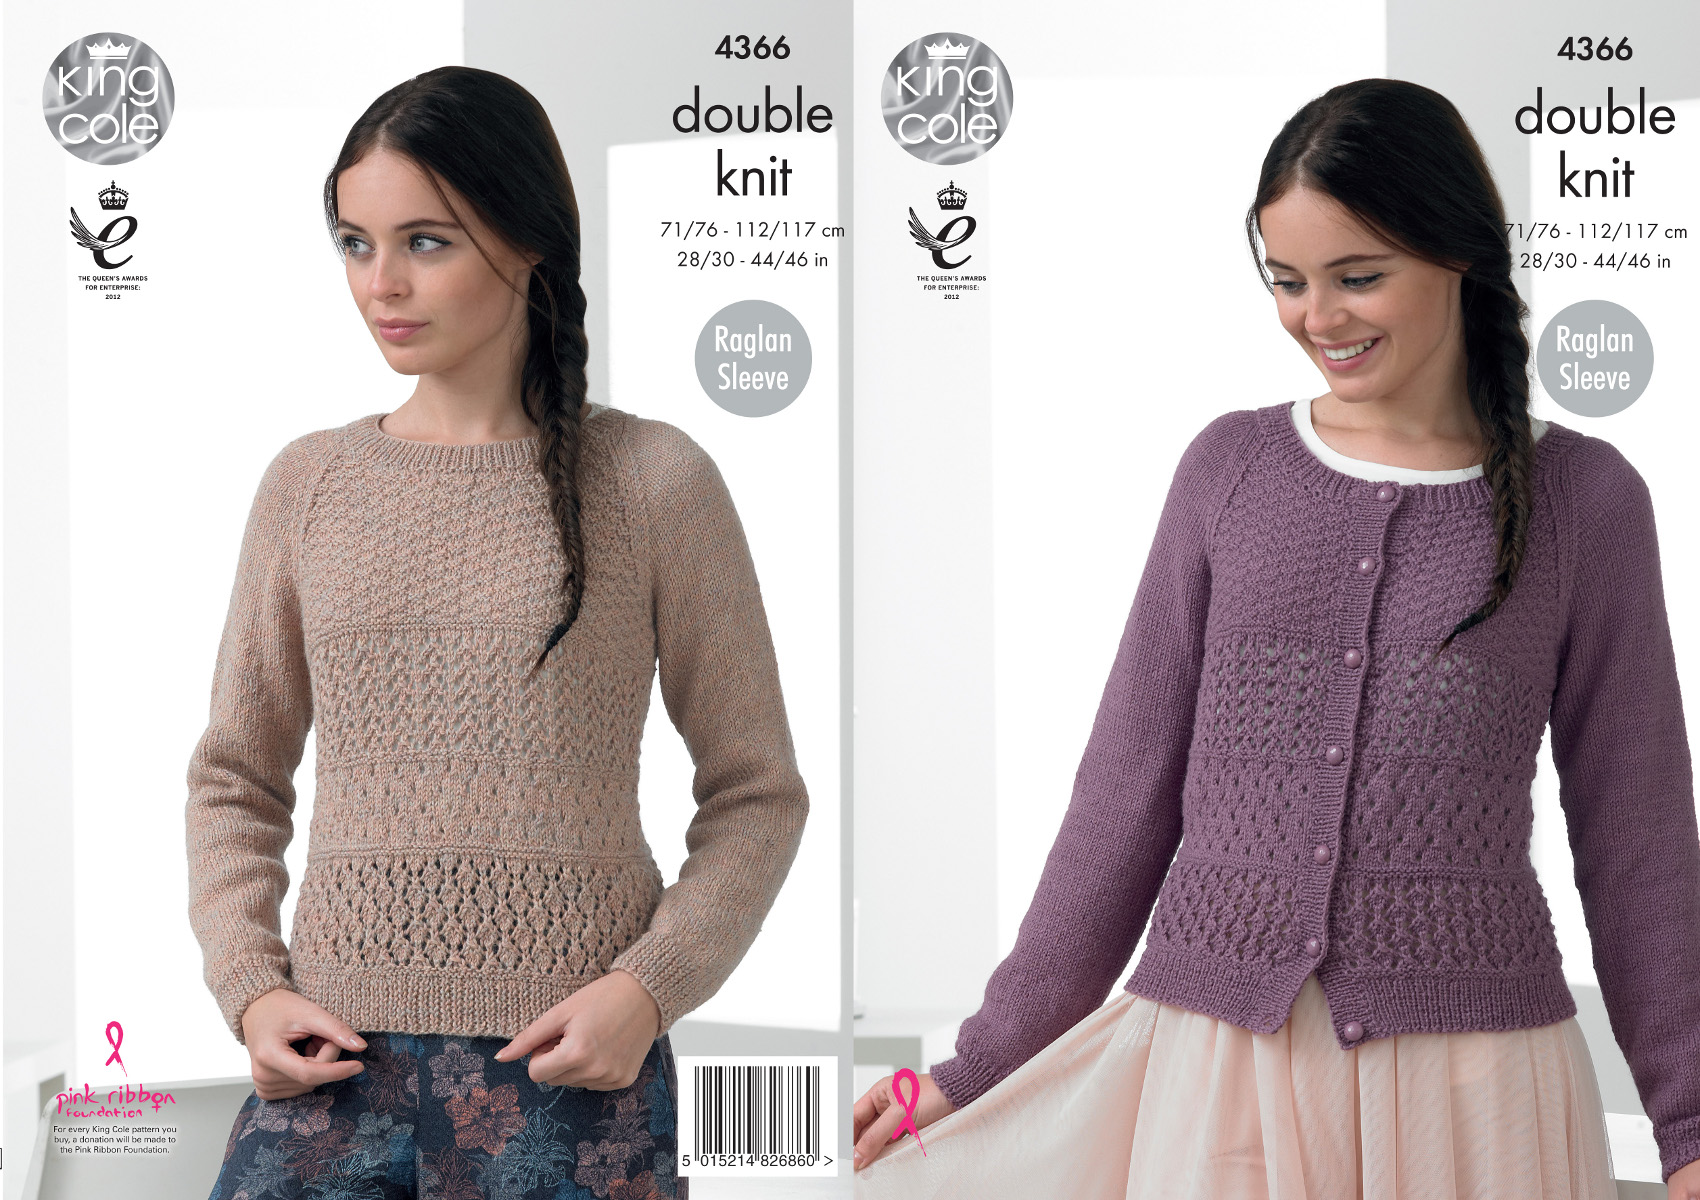 Knitting Jumper Pattern : Raglan sleeve cardigan jumper sweater ladies knitting pattern king